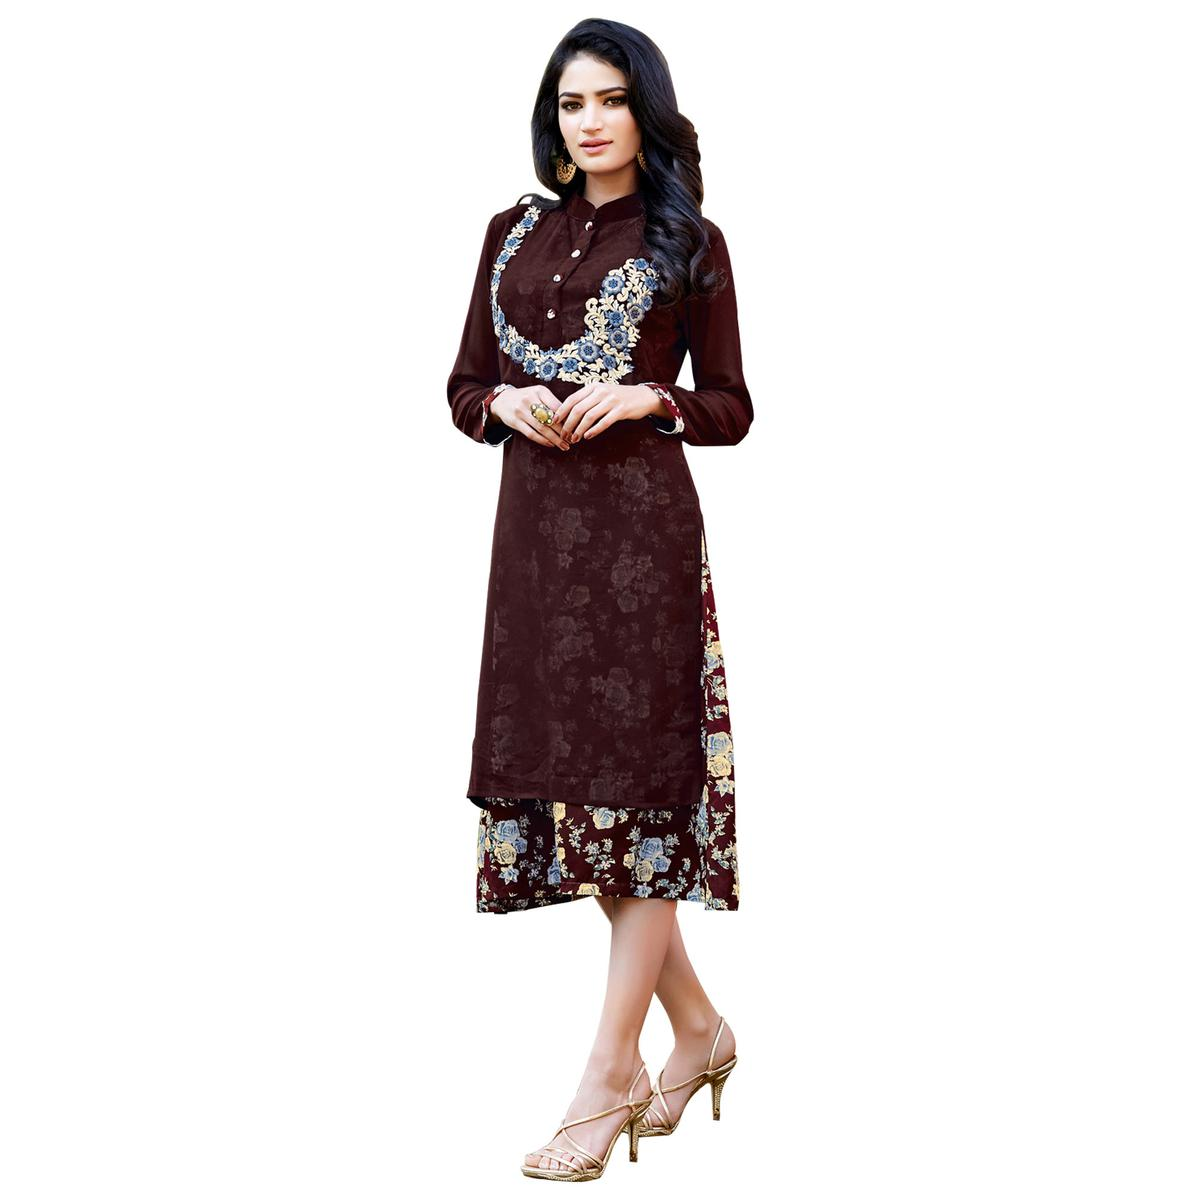 Ravishing Brown Colored Party Wear Embroidered Georgette Kurti